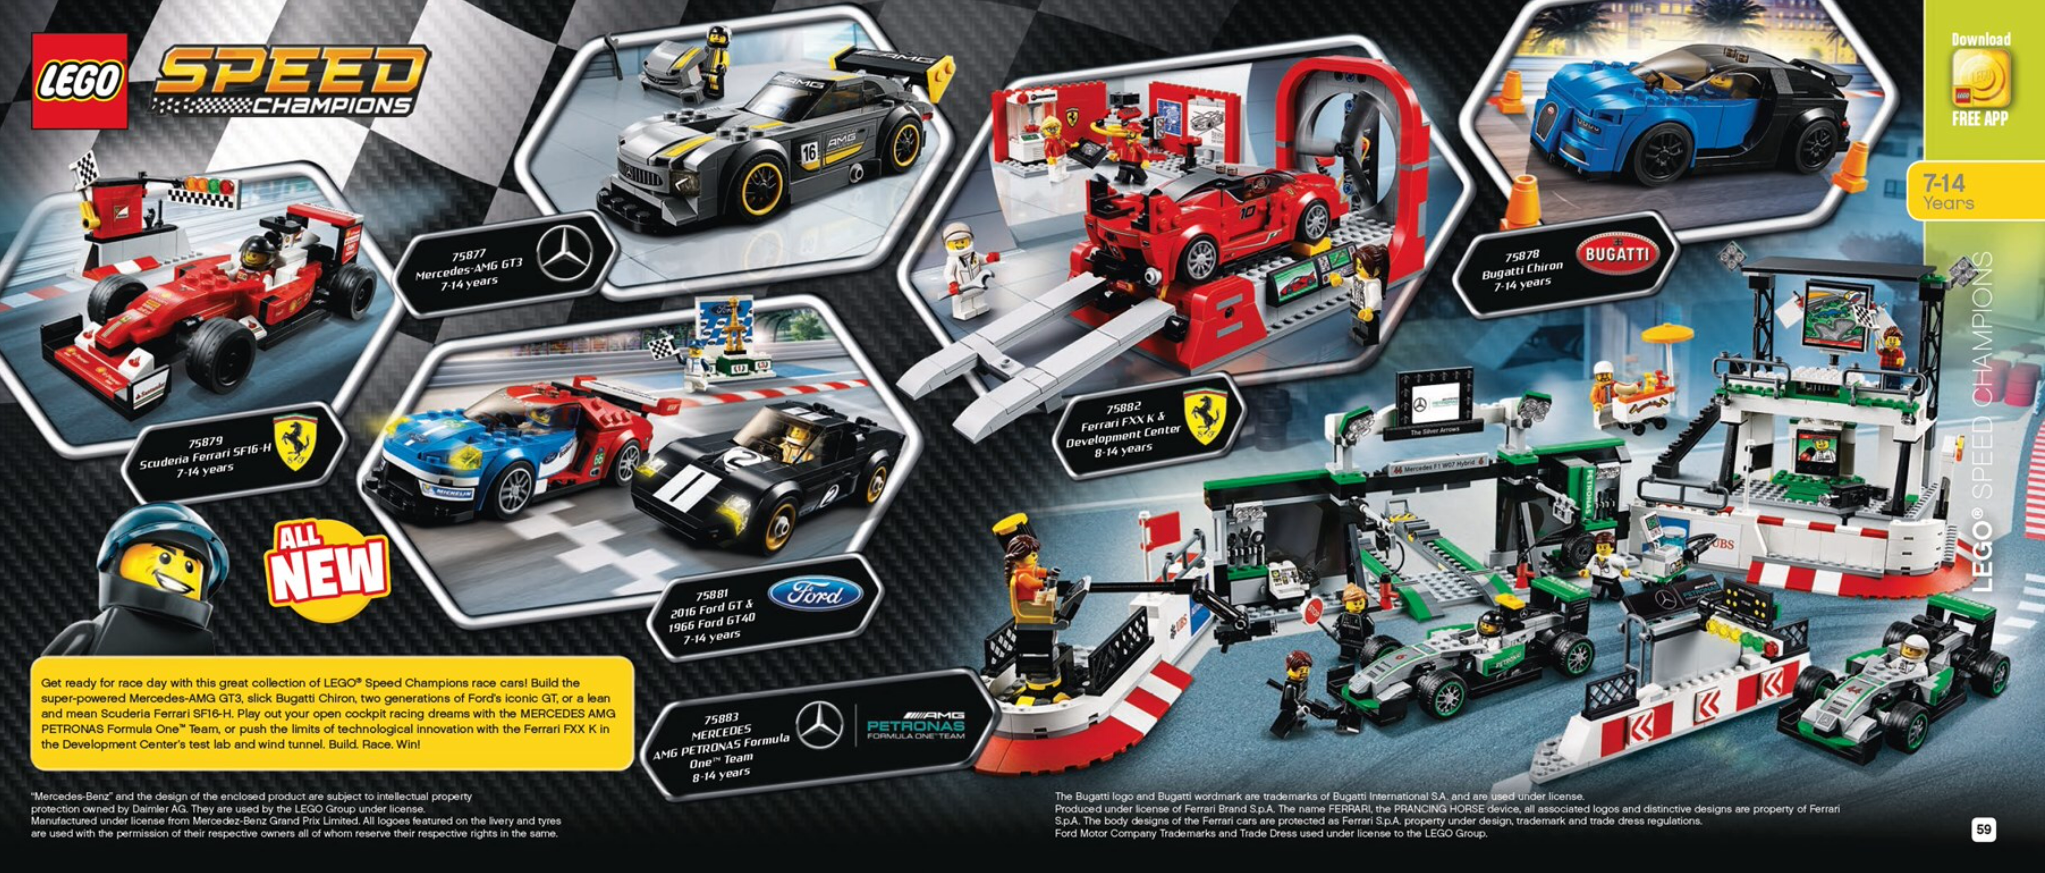 Australian LEGO Release Dates     First Half of 2017 sets  January     June